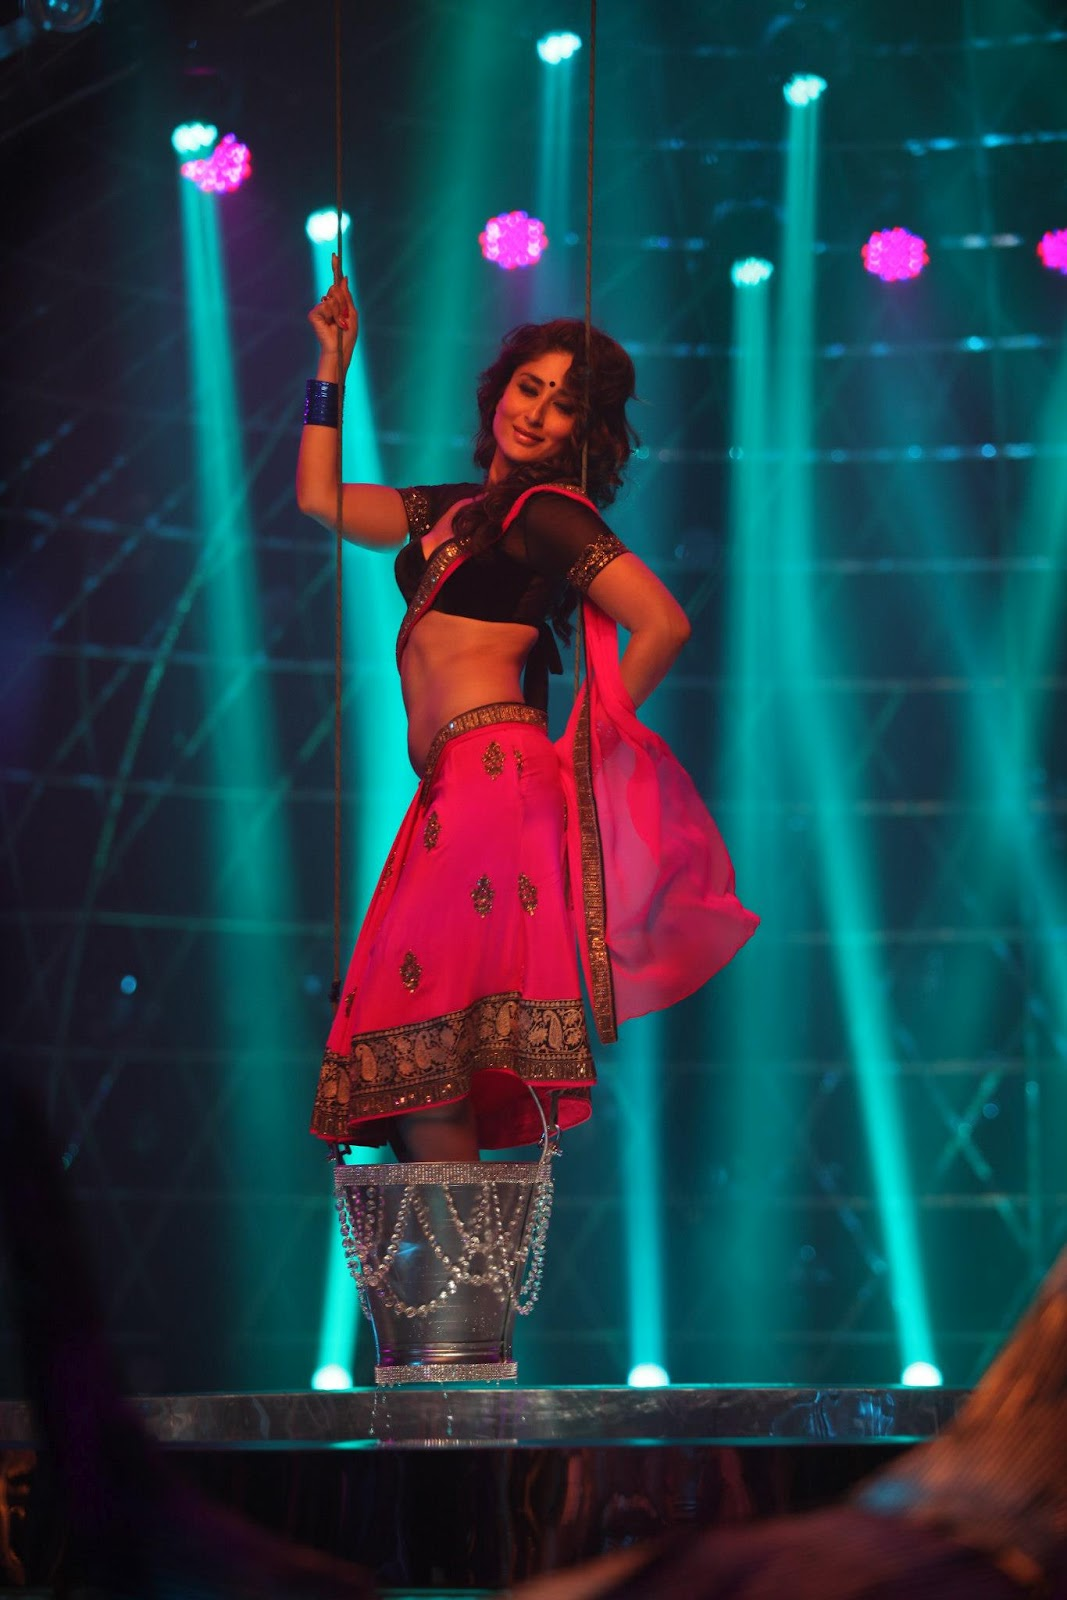 High Quality Bollywood Celebrity Pictures